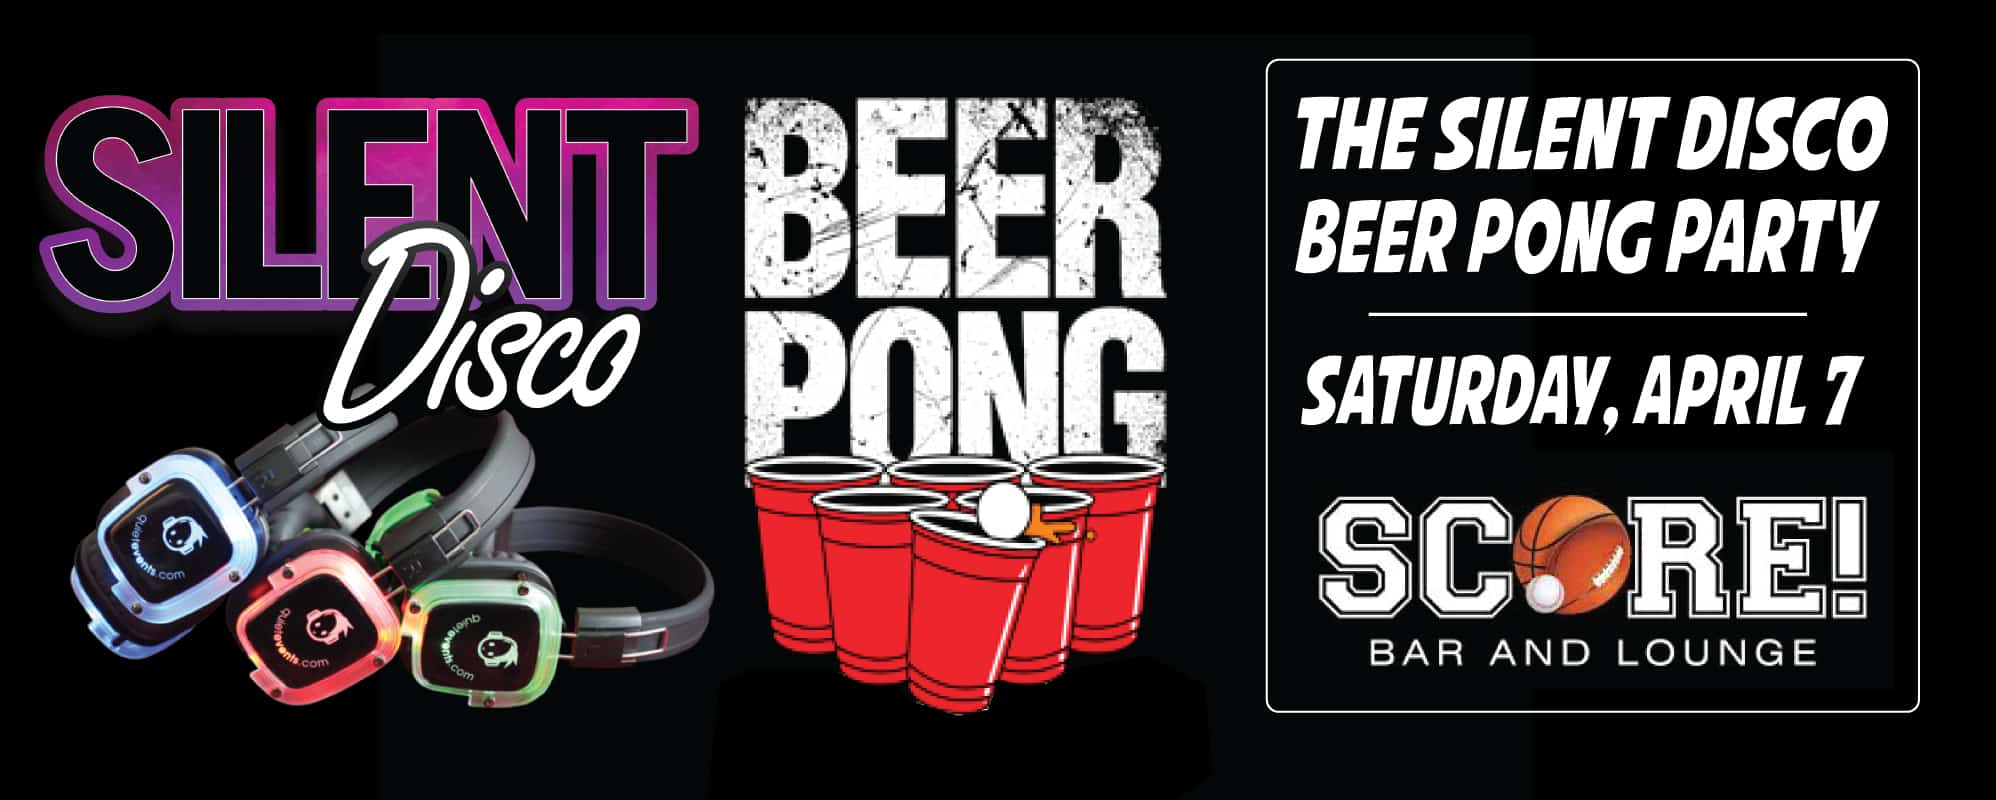 Silent Disco Beer Pong San Francisco